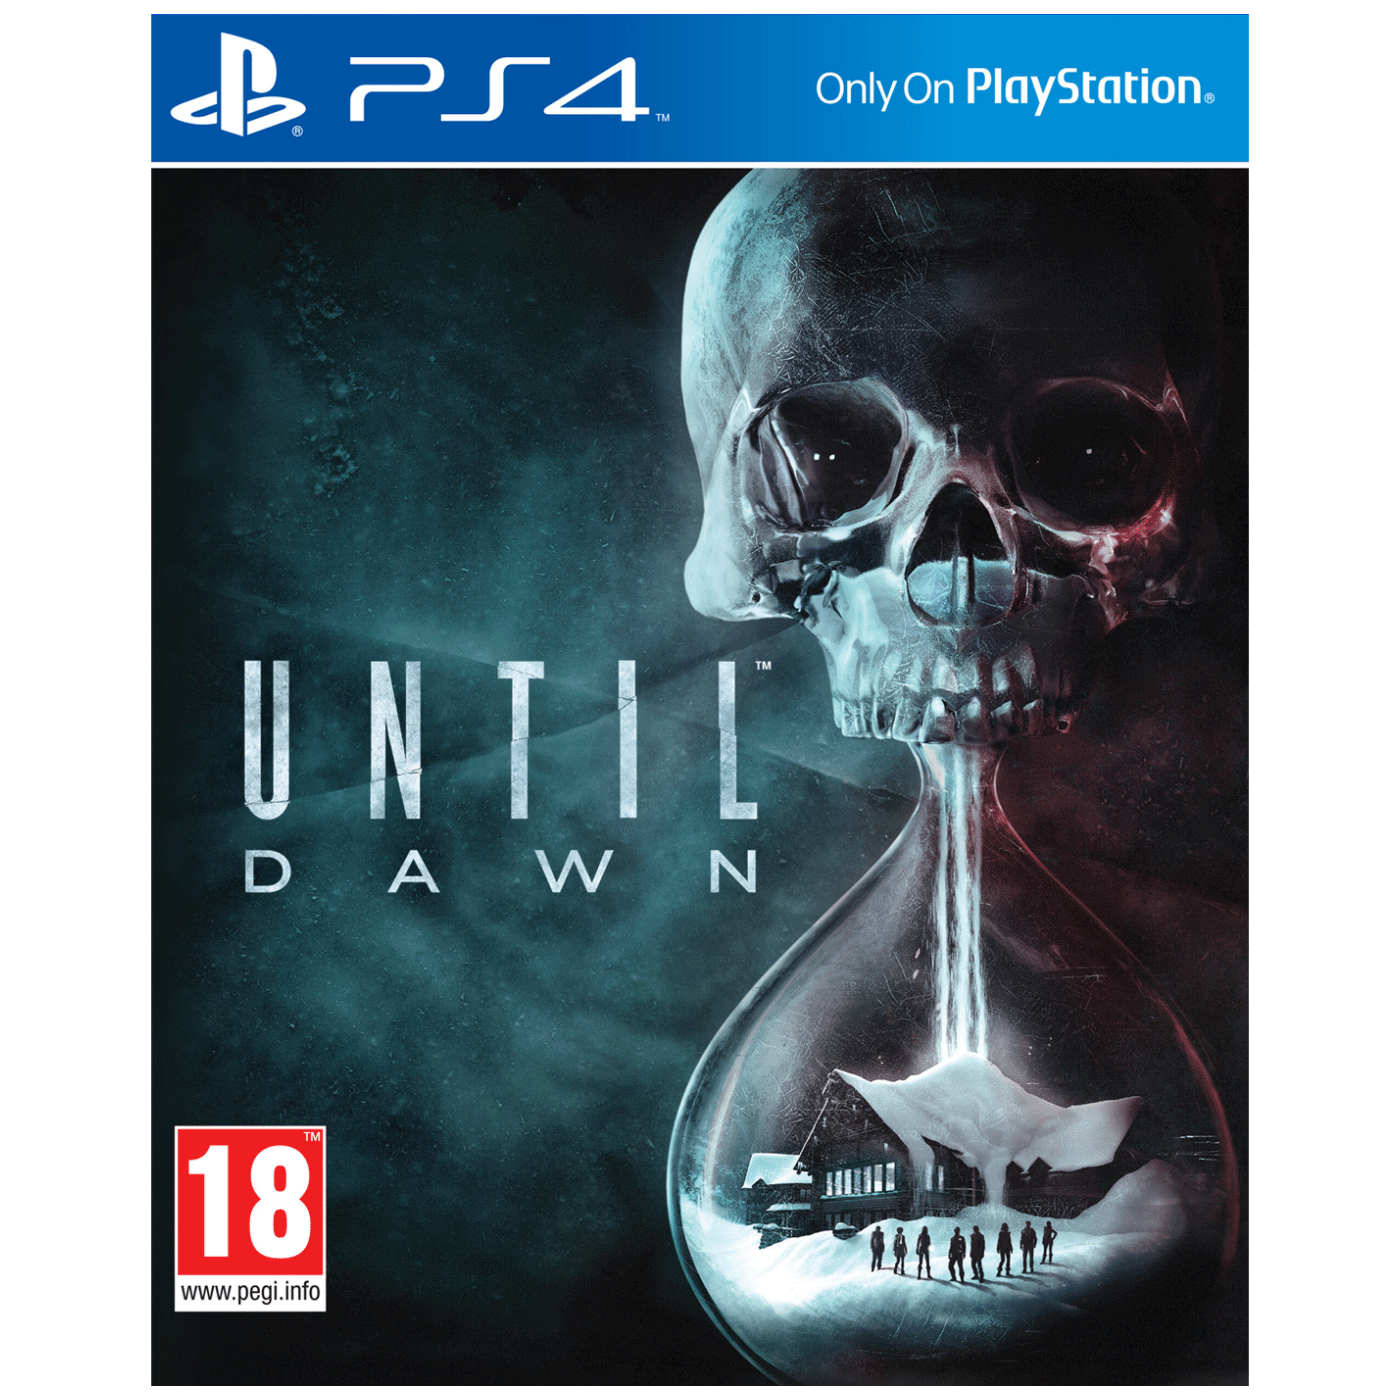 UNTIL DAWN EXTENDED D1 EDITION PS4